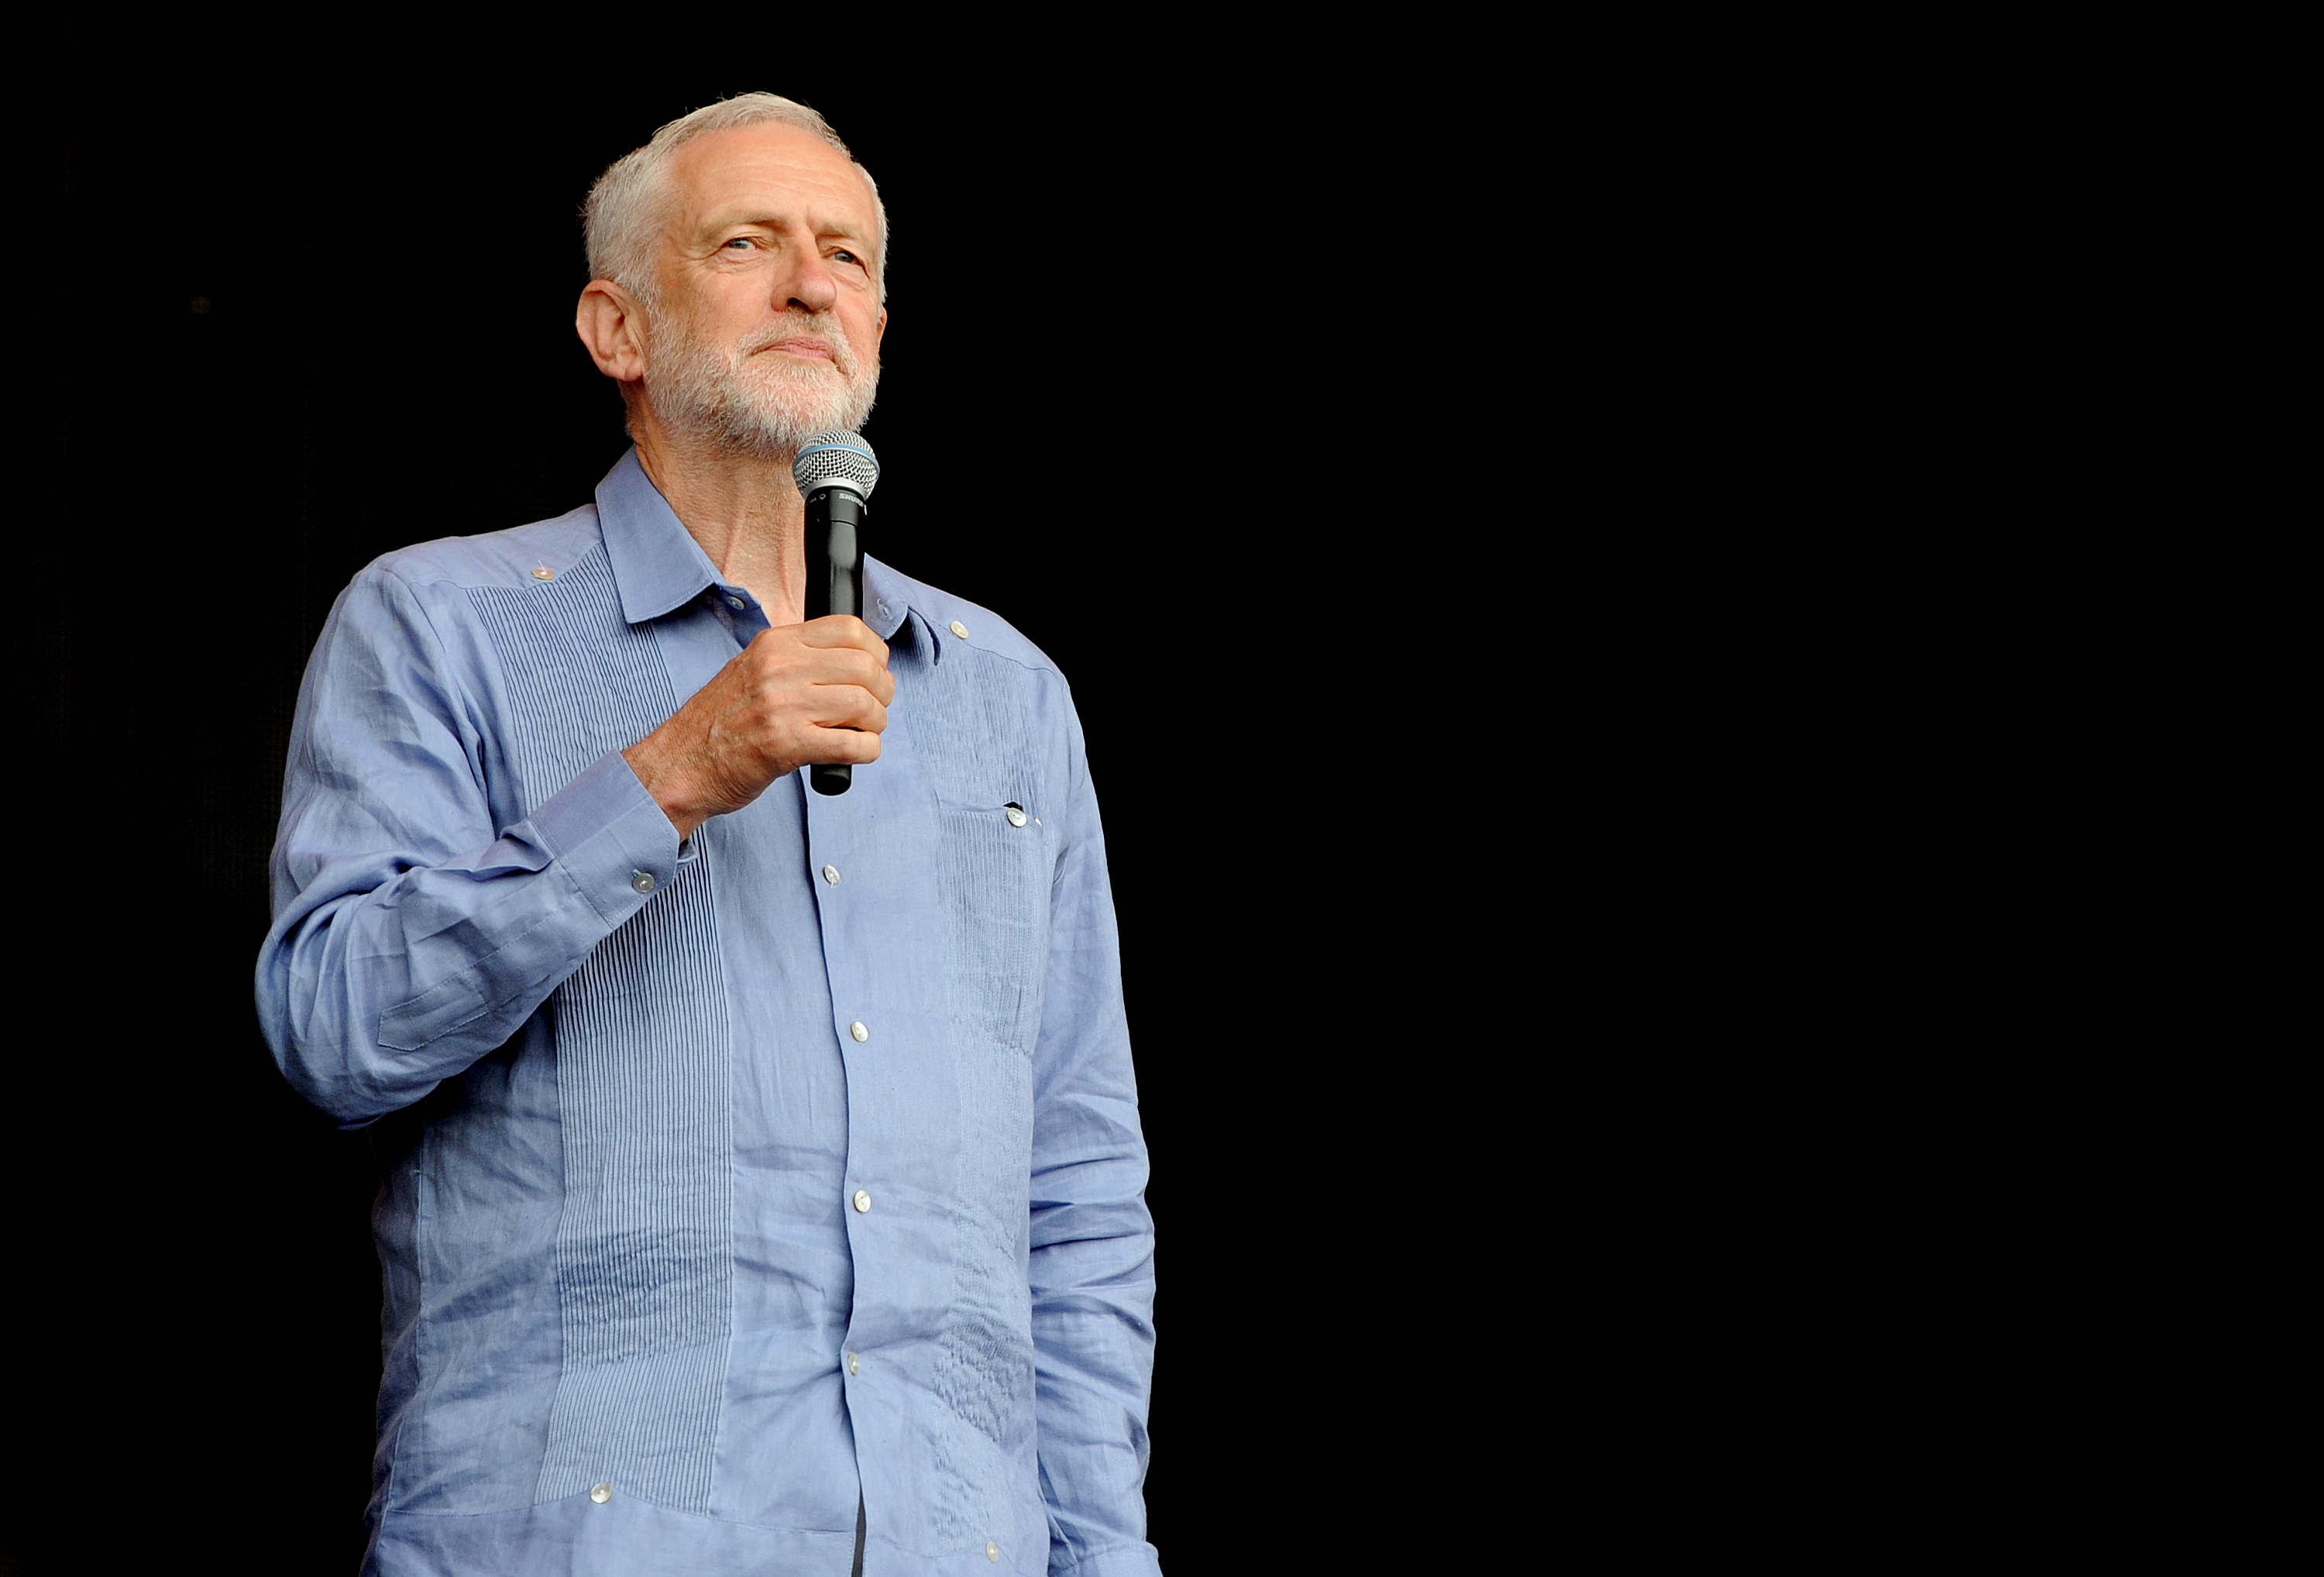 Jeremy Corbyn is abandoning his principles. Finally